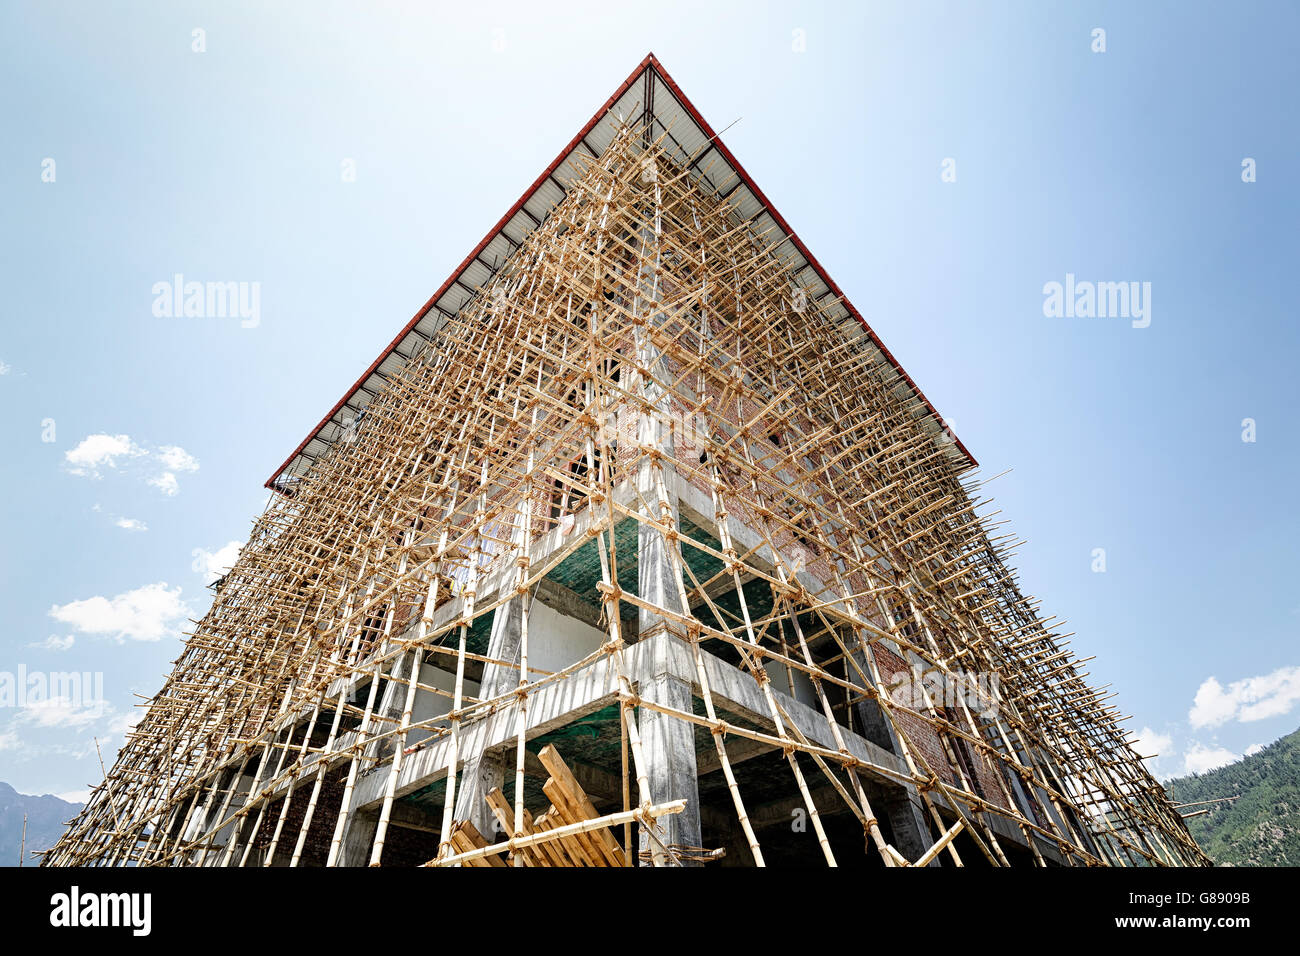 Building under construction with bamboo scaffolding. - Stock Image